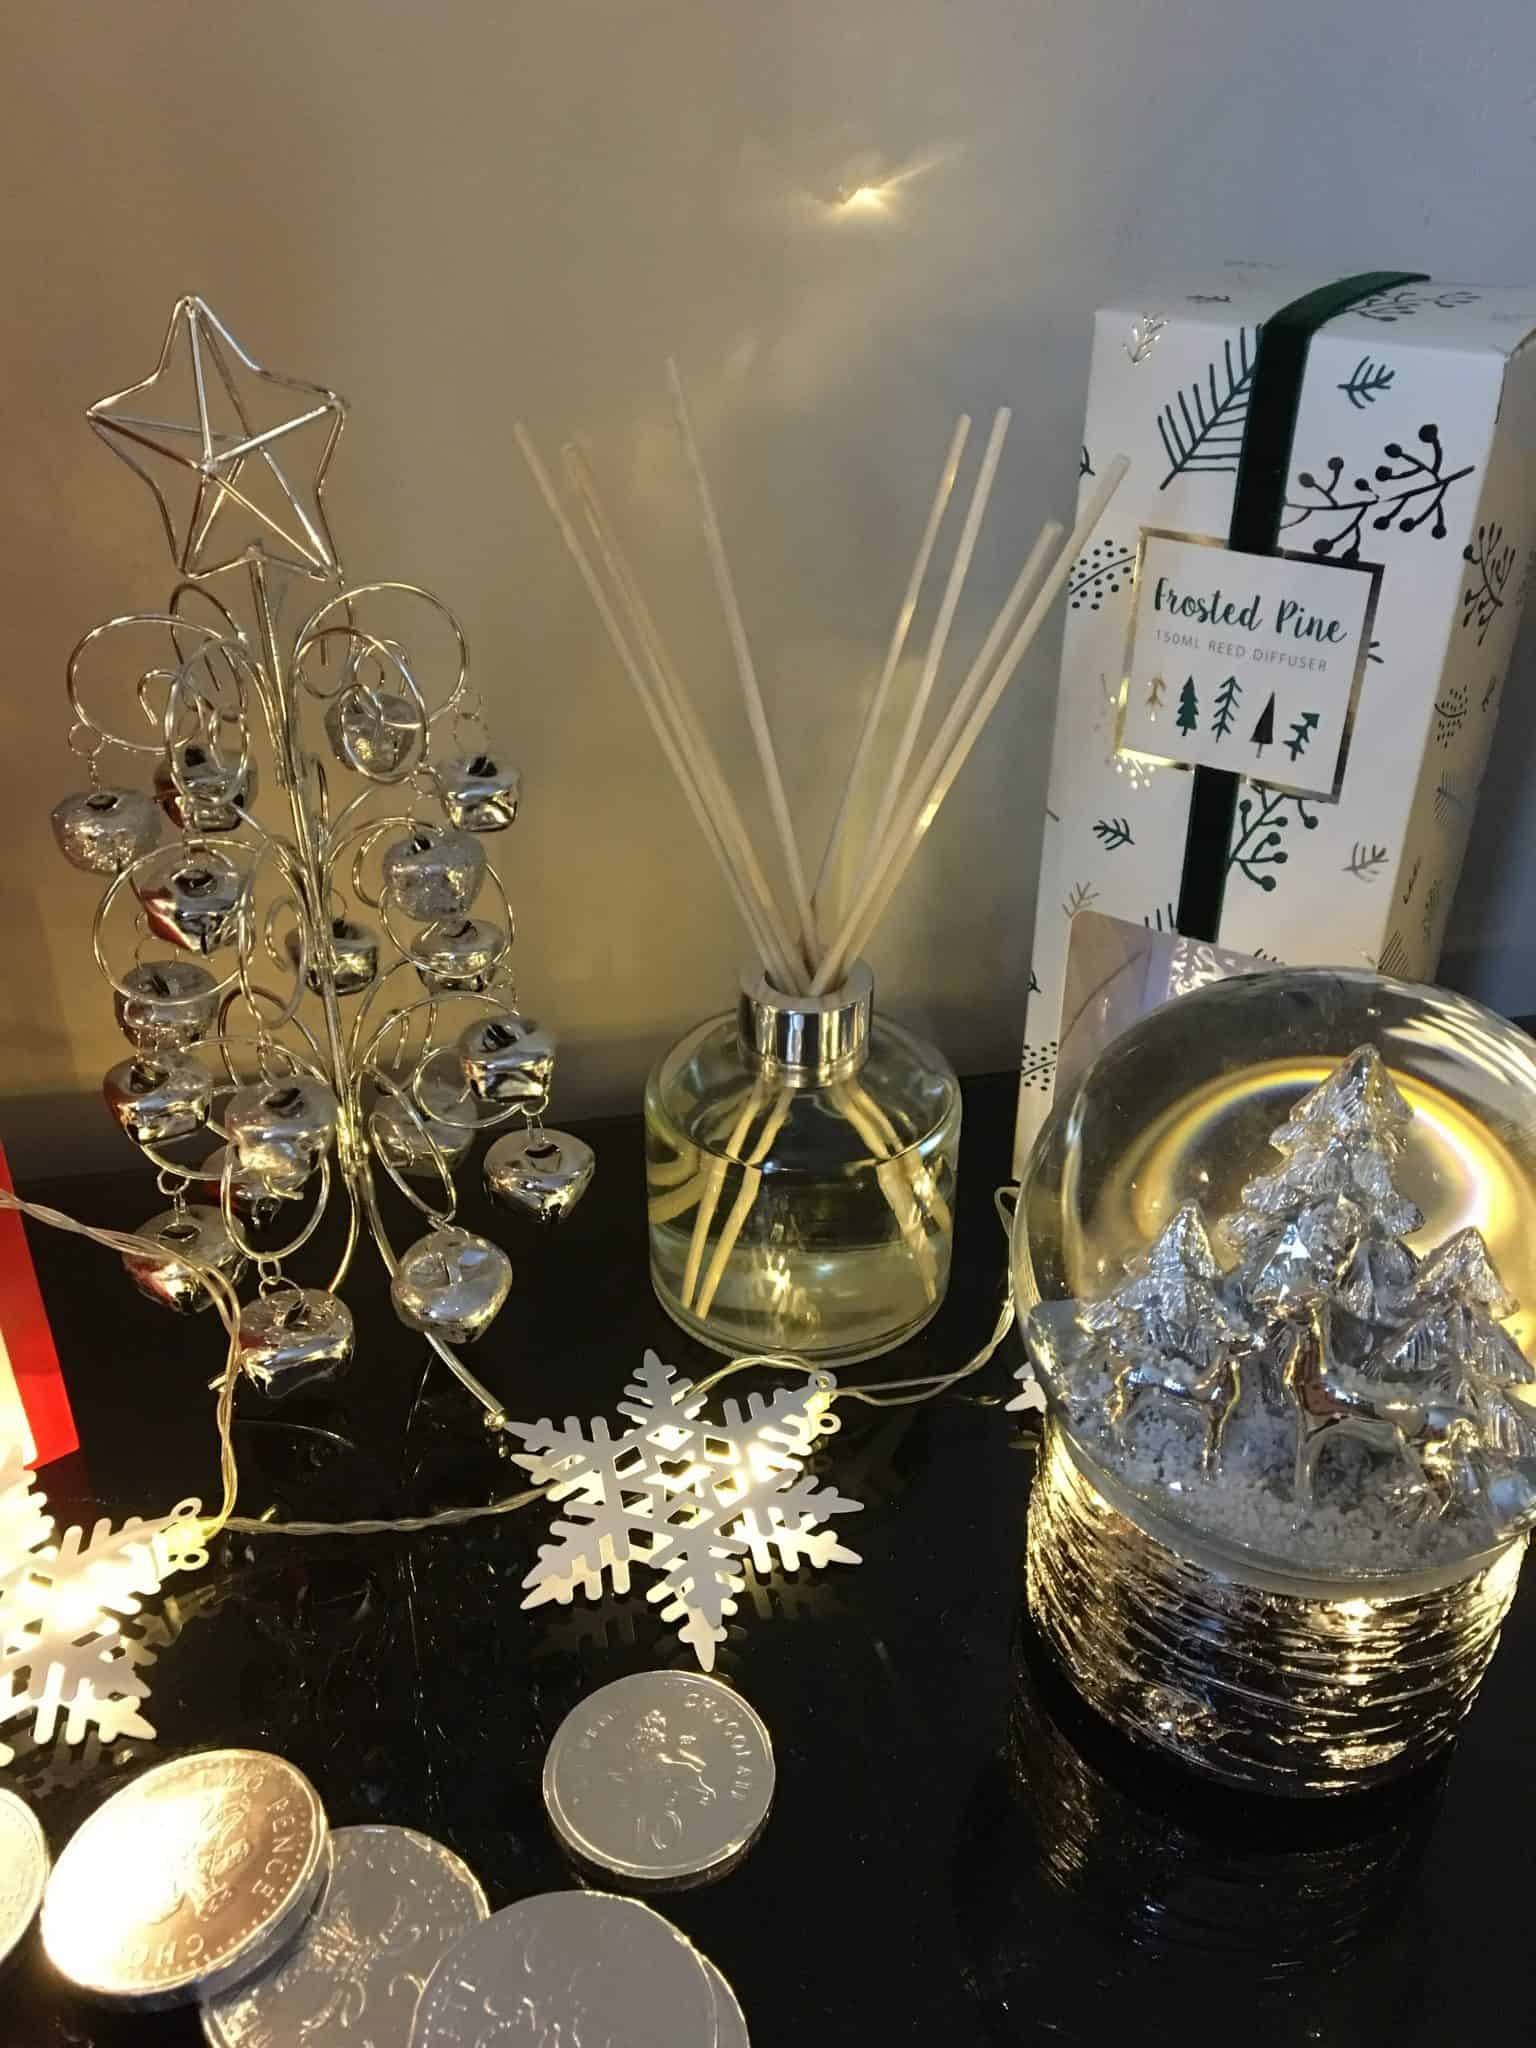 Frosted pine reed diffuser and jingle bell tree